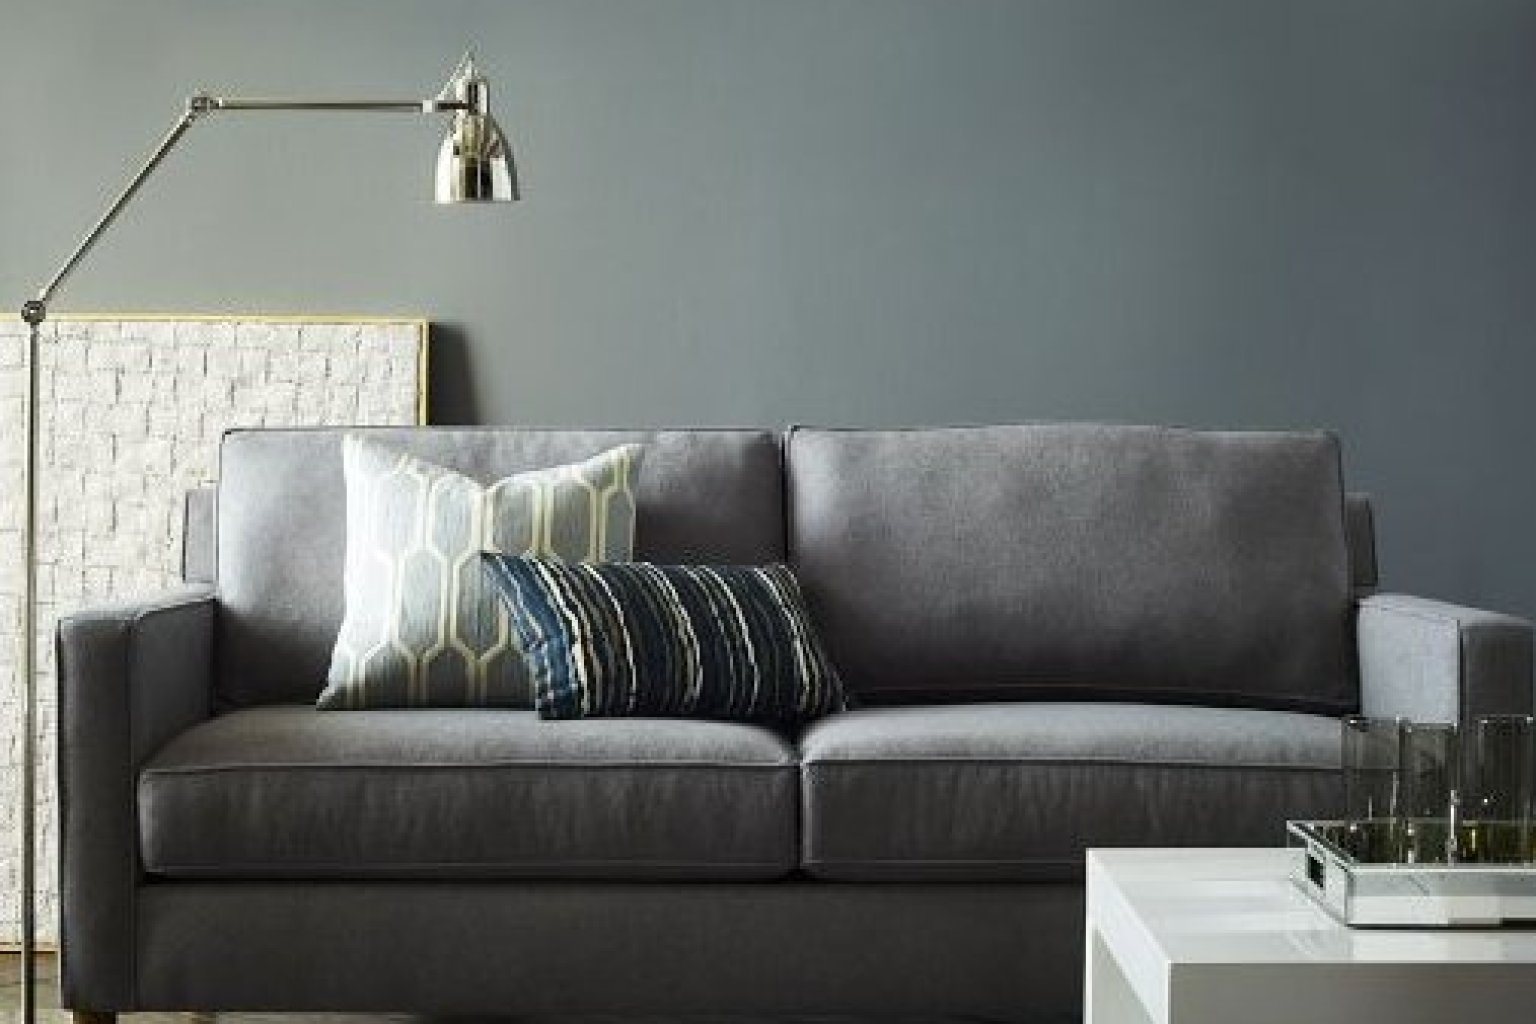 6 Couches For Small Apartments That Will Actually Fit In Your Space (PHOTOS) | HuffPost : sectionals for small apartments - Sectionals, Sofas & Couches